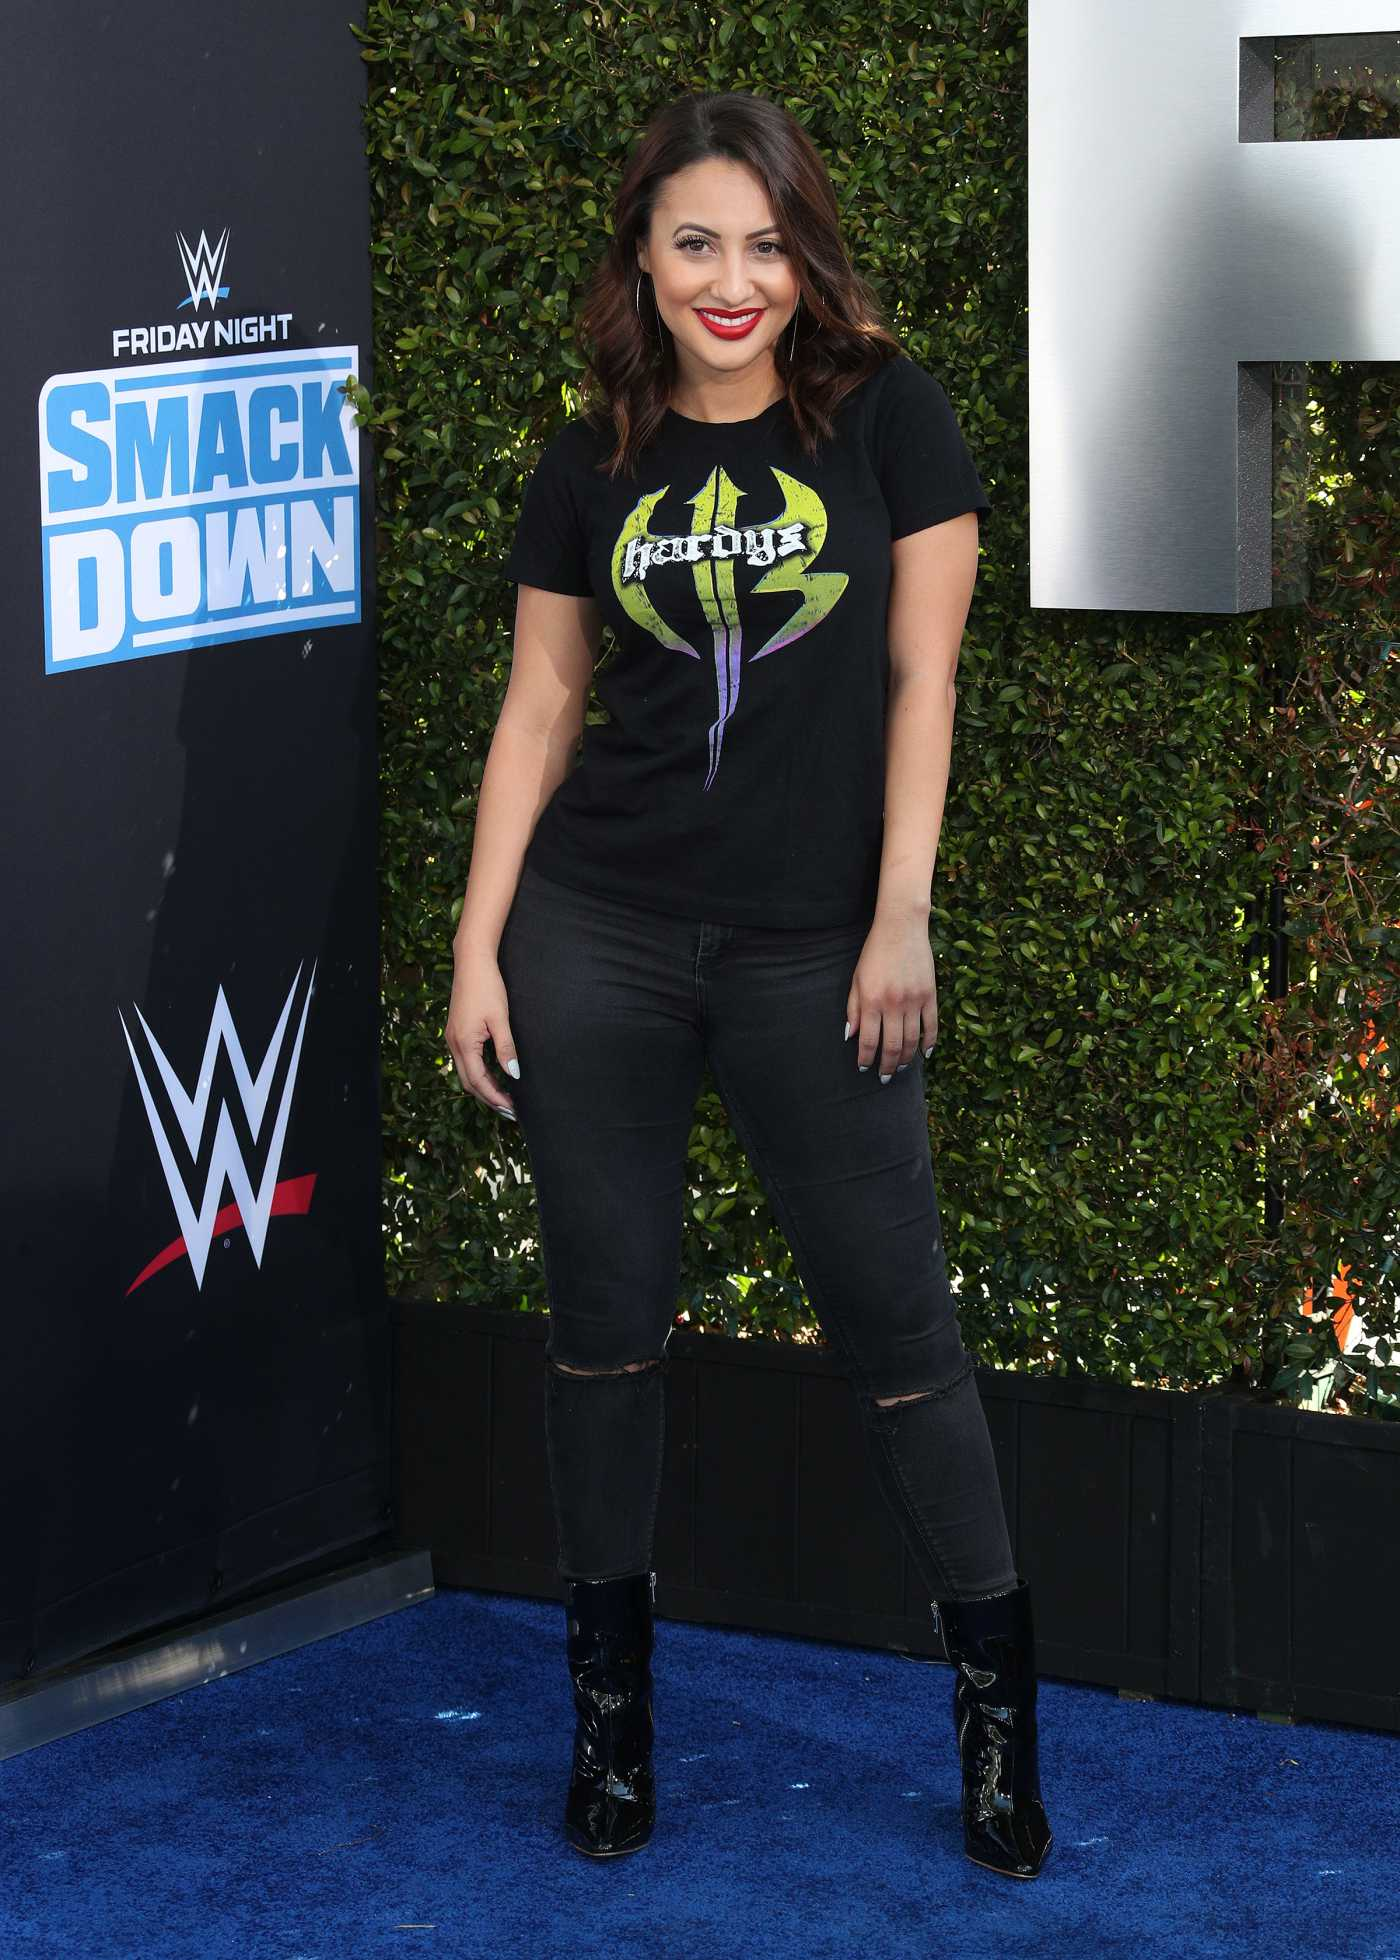 Francia Raisa Attends the WWE 20th Anniversary Celebration Marking Premiere of WWE Friday Night SmackDown in LA 10/04/2019